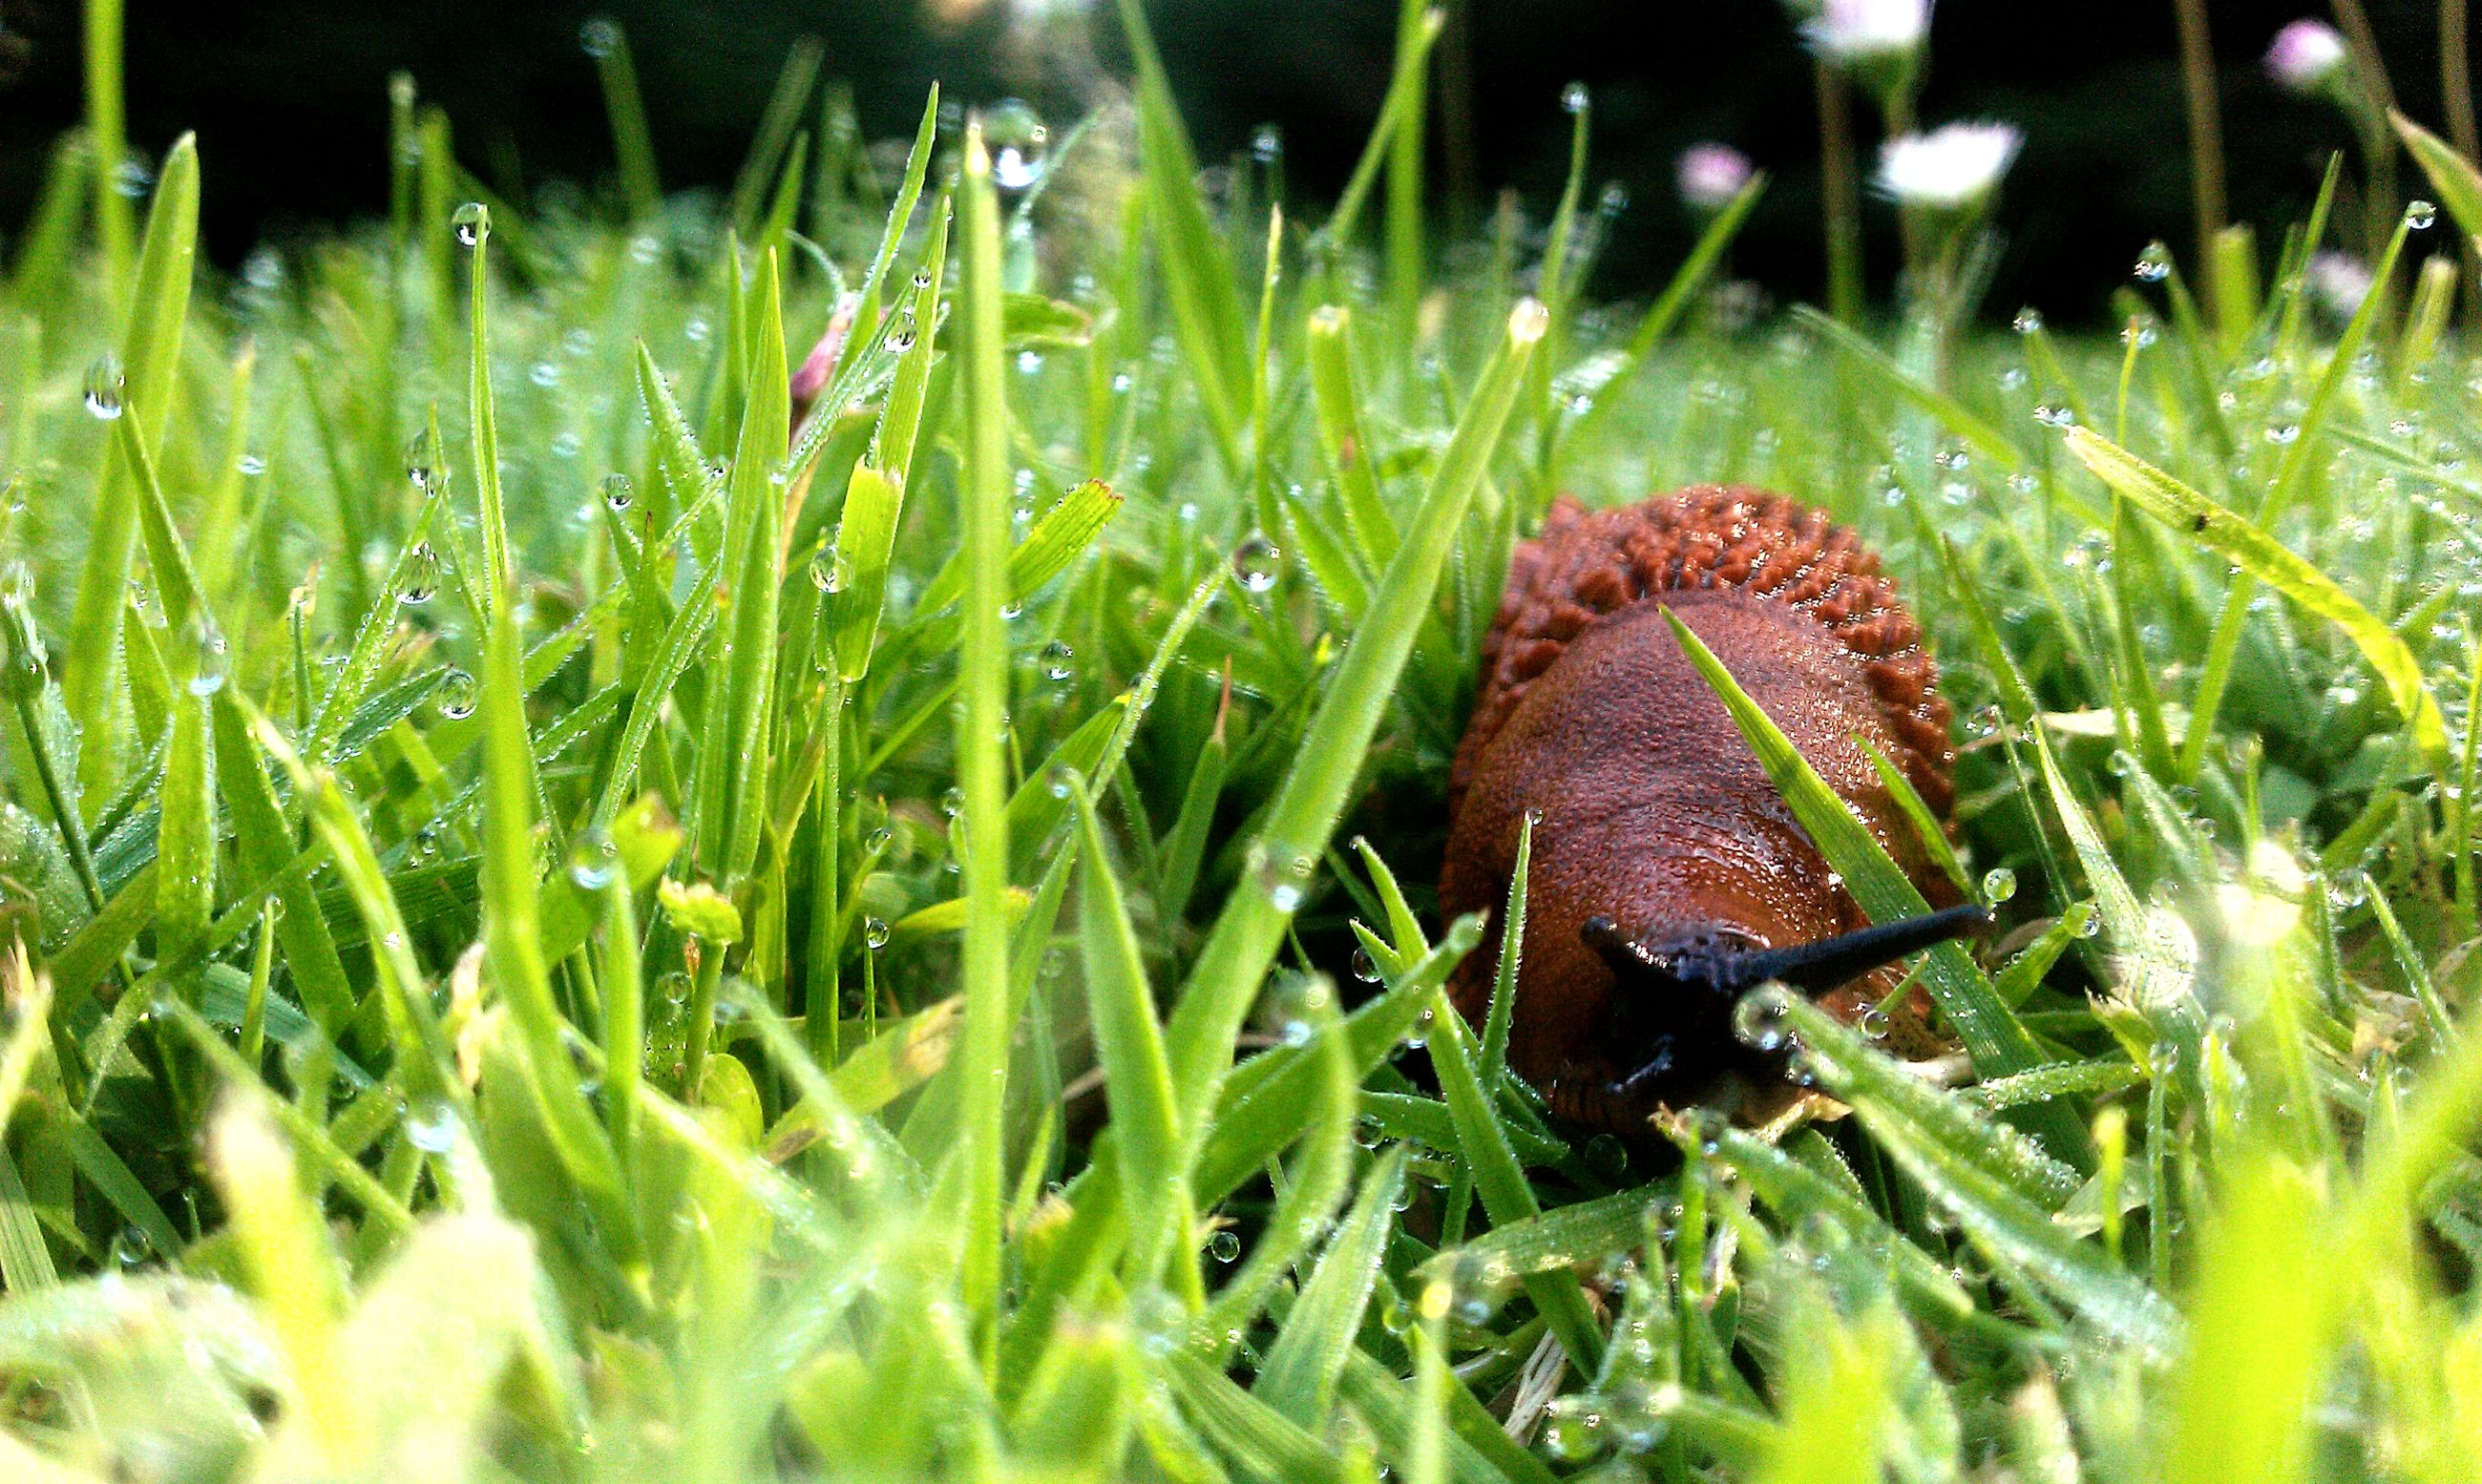 animal themes, one animal, grass, animals in the wild, wildlife, insect, selective focus, close-up, green color, nature, field, blade of grass, plant, grassy, day, wet, outdoors, growth, no people, leaf